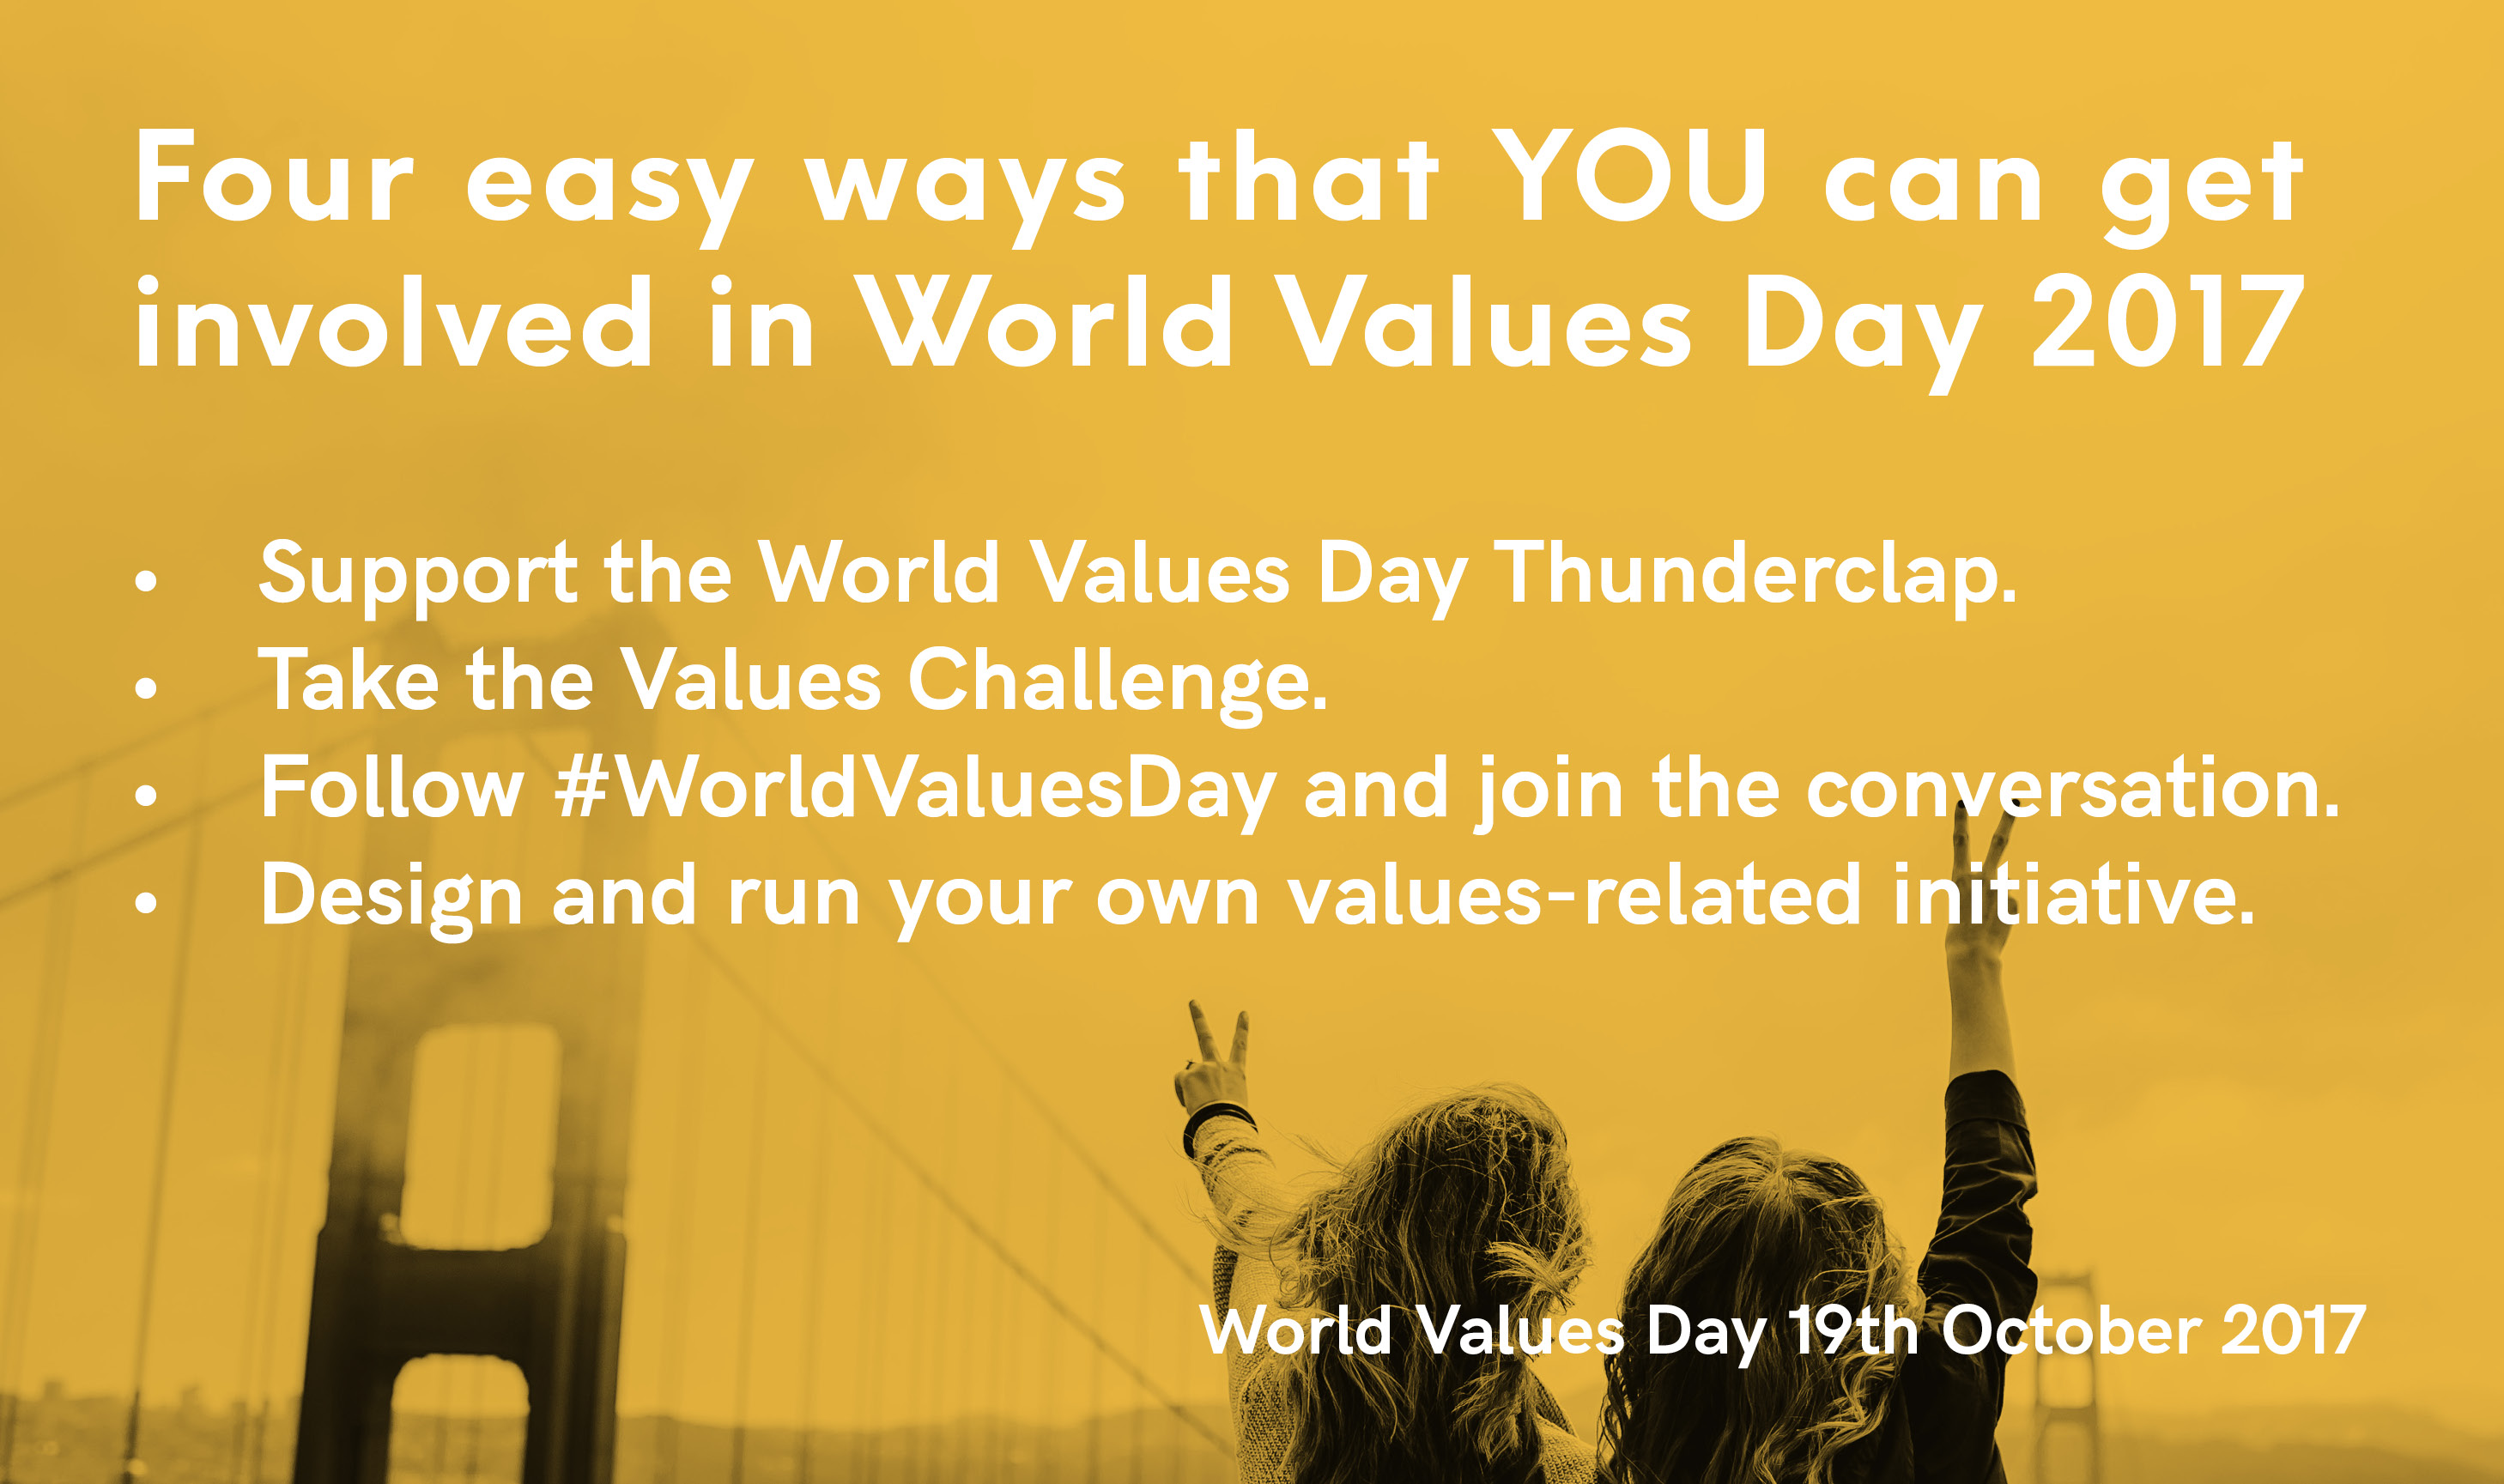 Four Easy Ways YOU Can Get Involved in World Values Day 2017